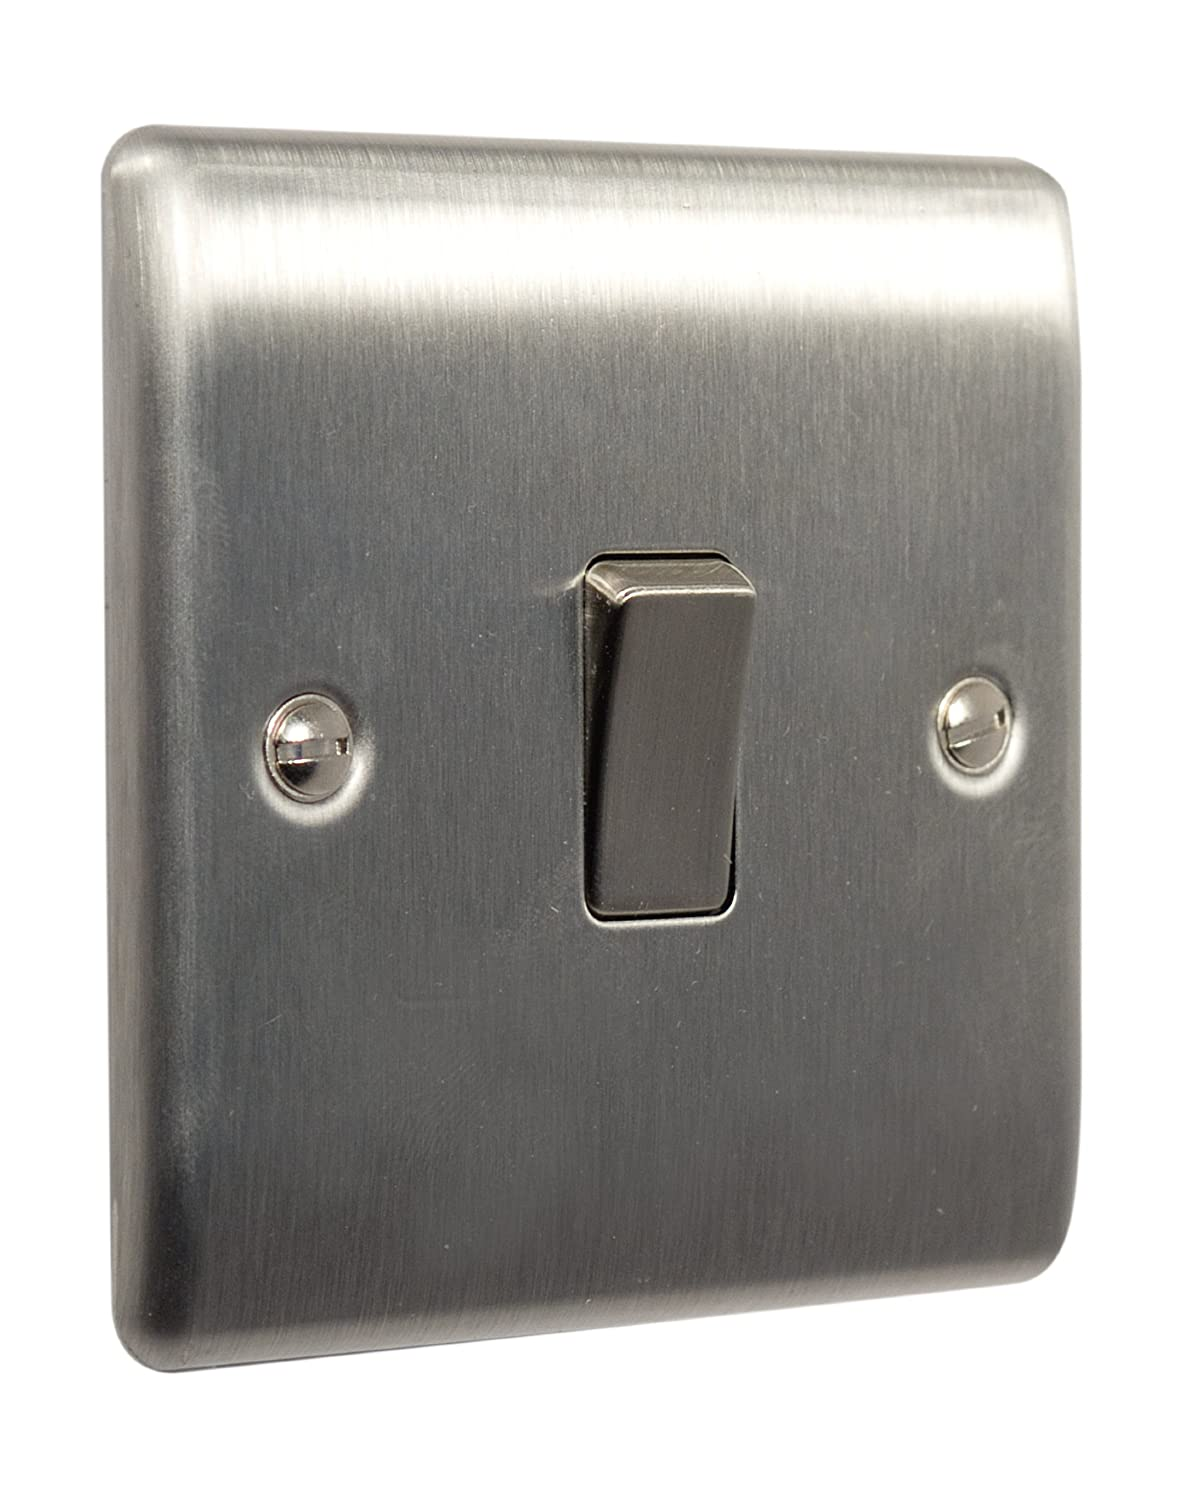 Bg Electrical Nbs13 Nexus Metal Brushed Steel 1 Gang 10ax Switches Also 3 Way Light Switch Wiring Further Intermediate Plate Kitchen Home